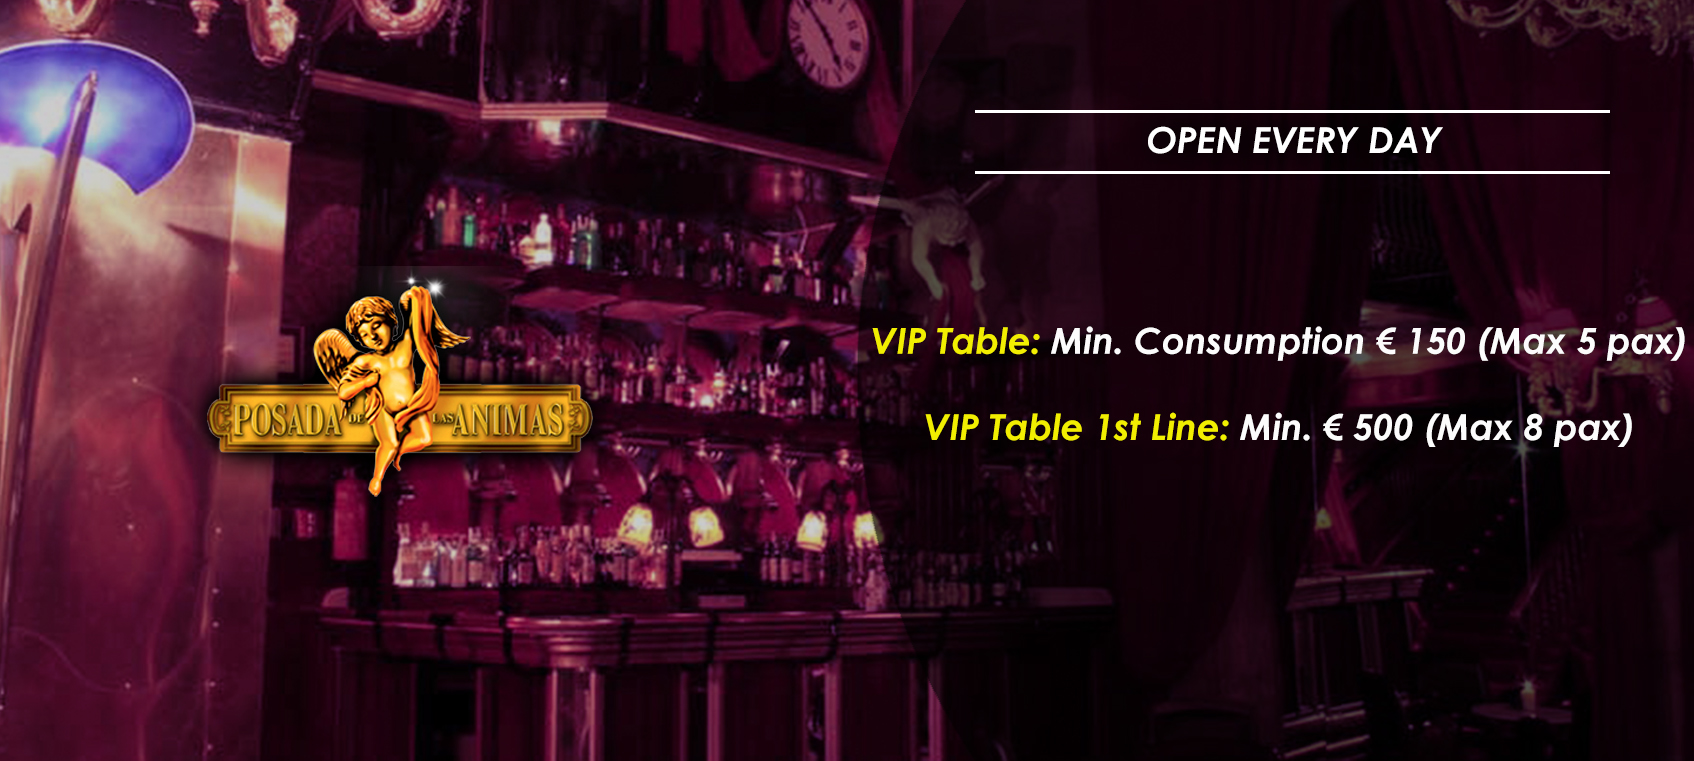 prices tables vip disco  posada